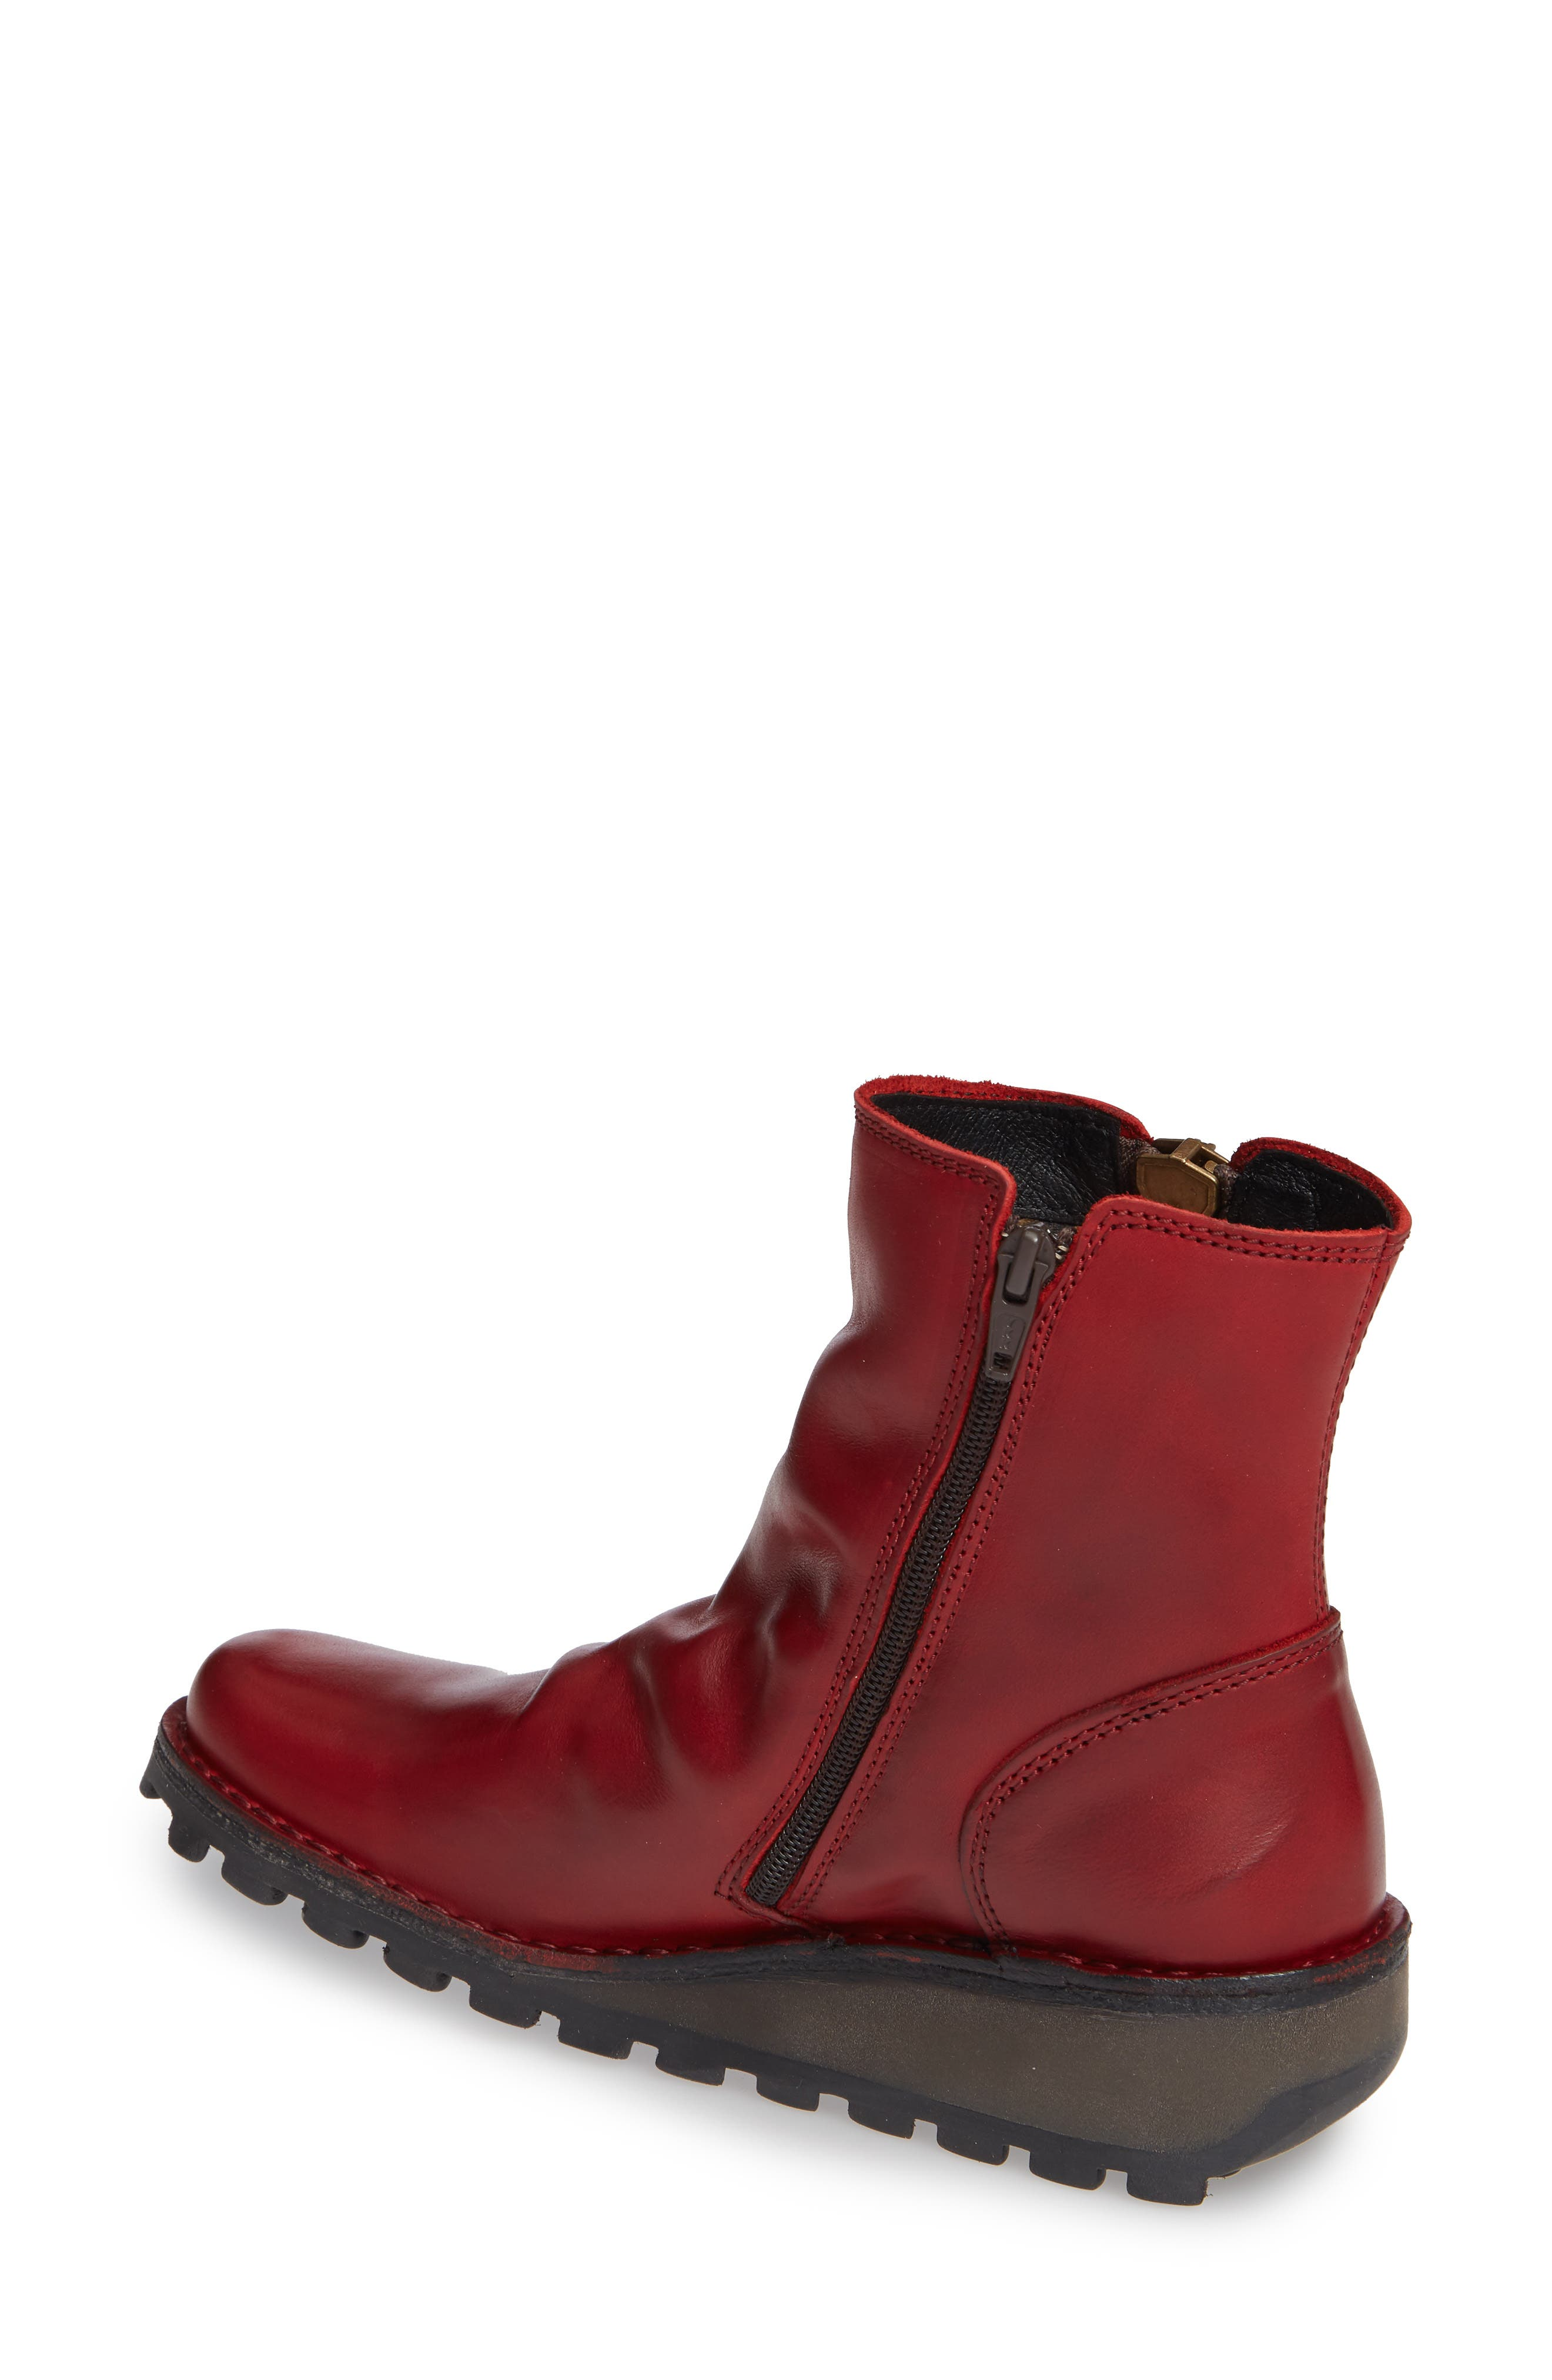 Mong Boot,                             Alternate thumbnail 2, color,                             RED